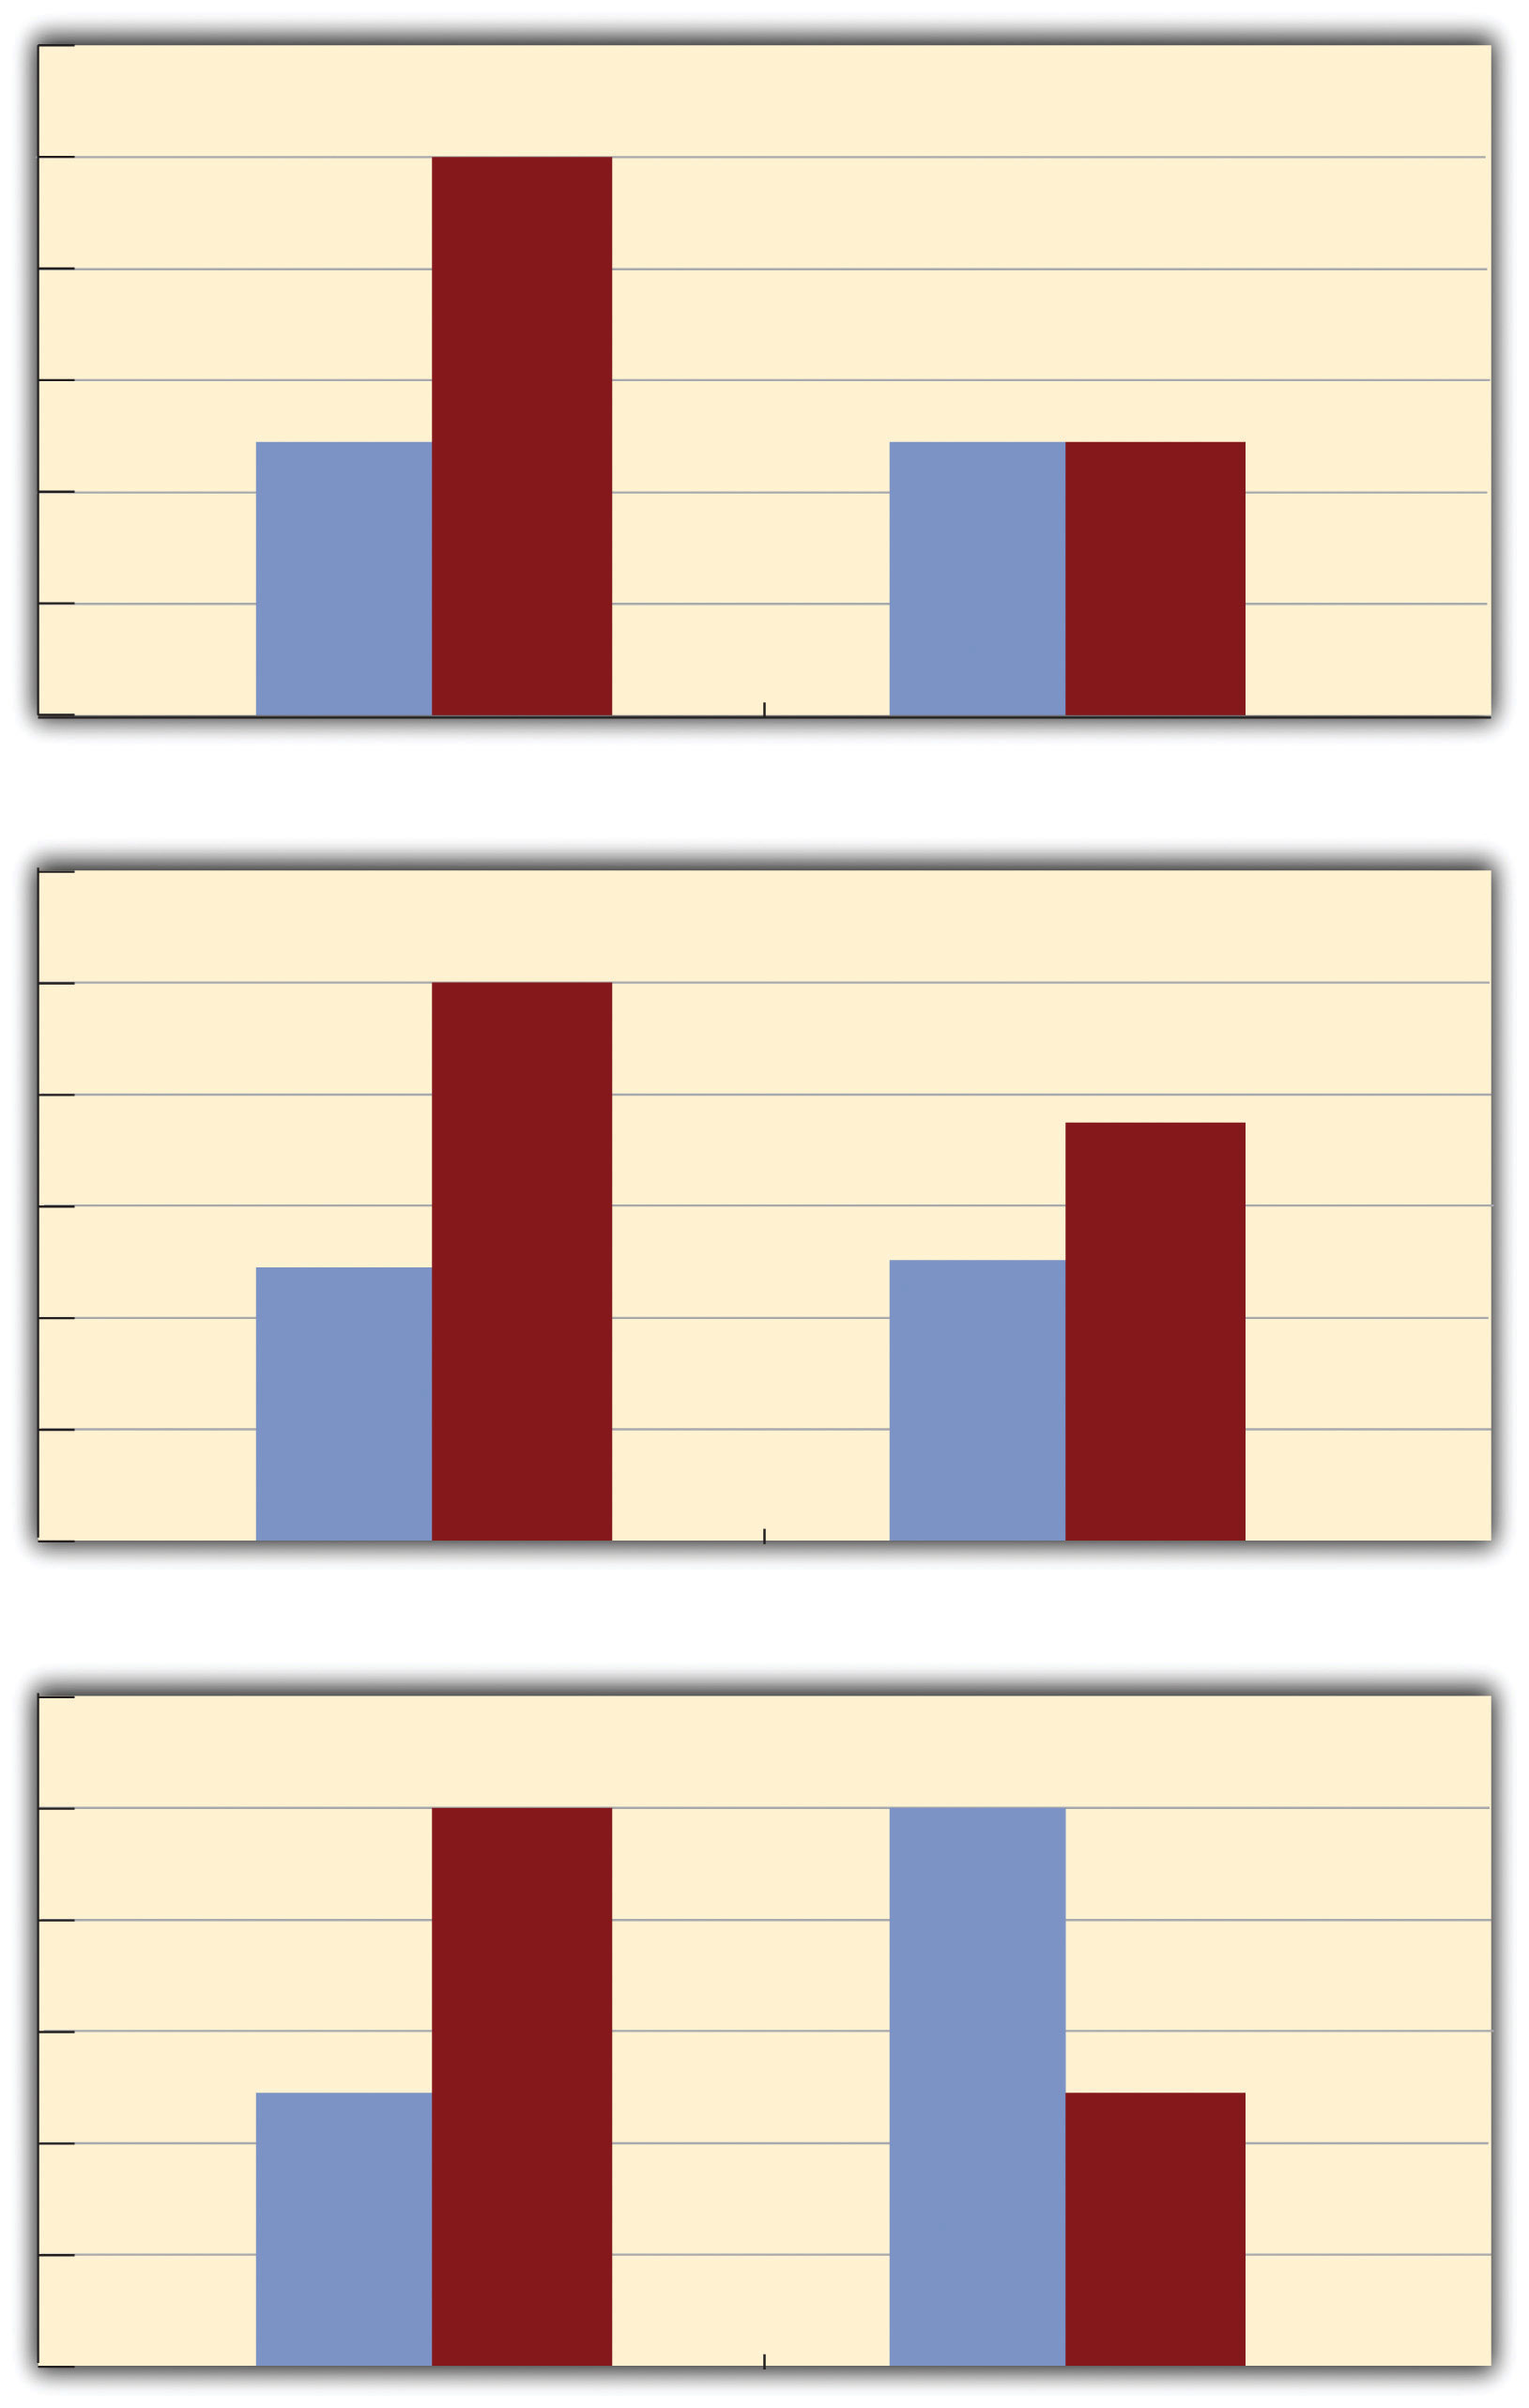 Bar Graphs Showing Three Types of Interactions